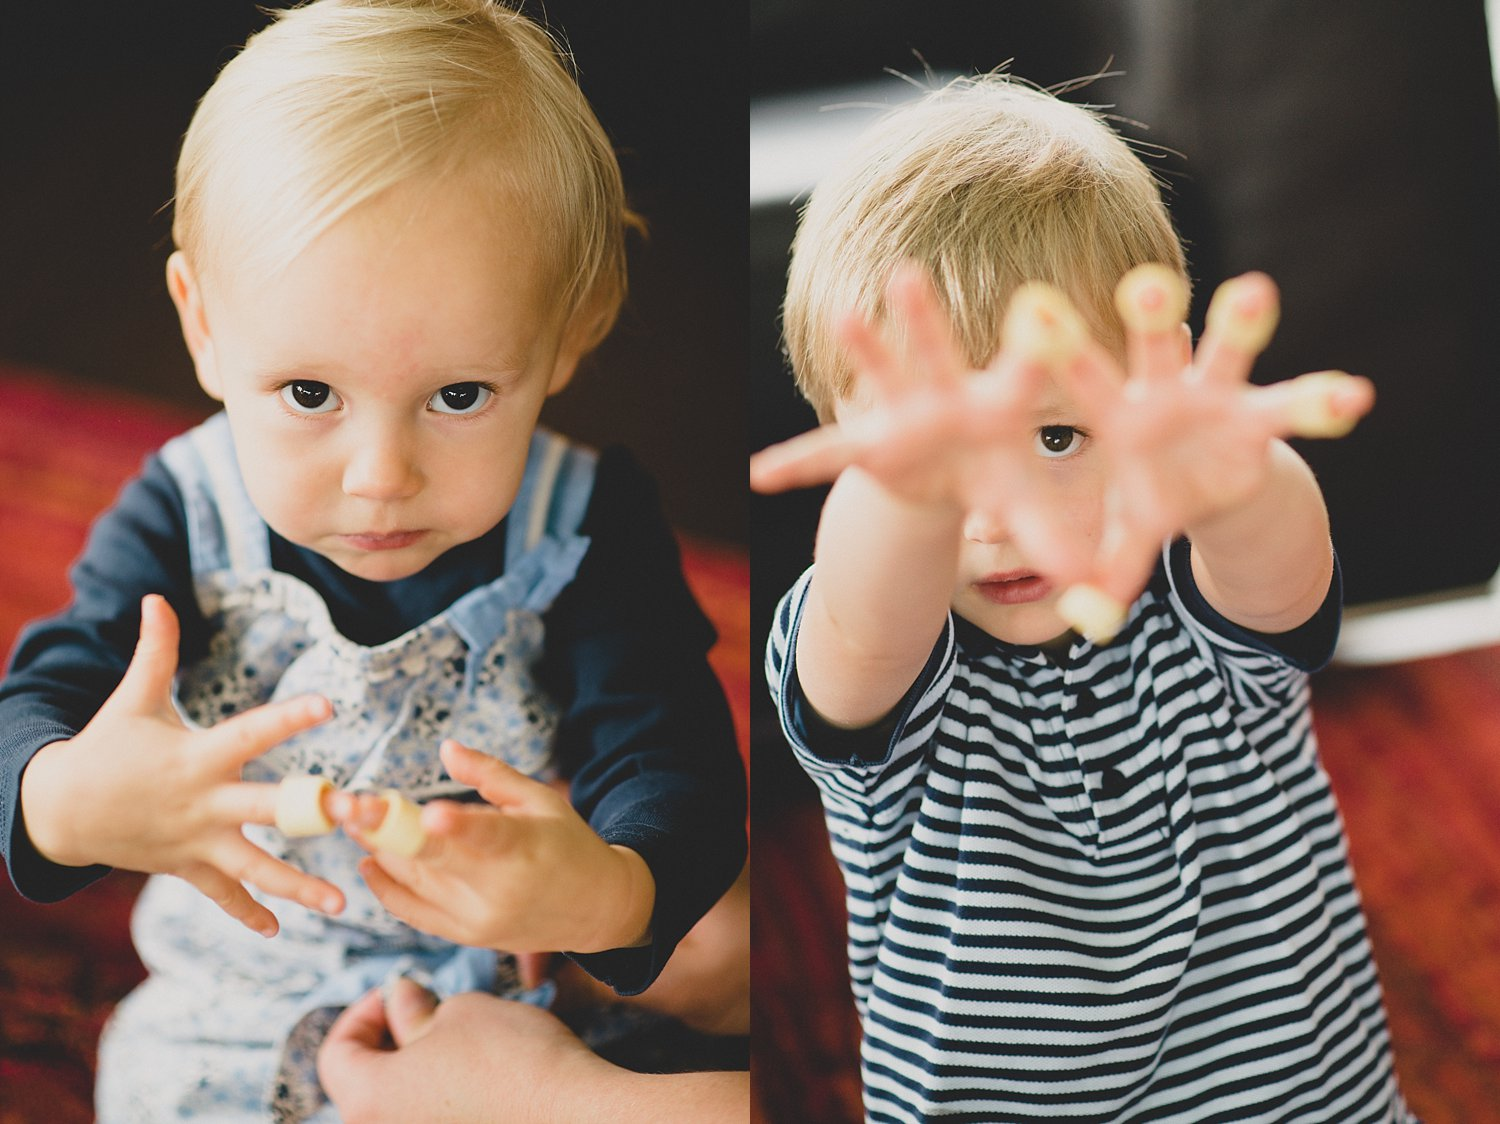 photos of kids - 5 Tips for Doing Lifestyle Photo Sessions